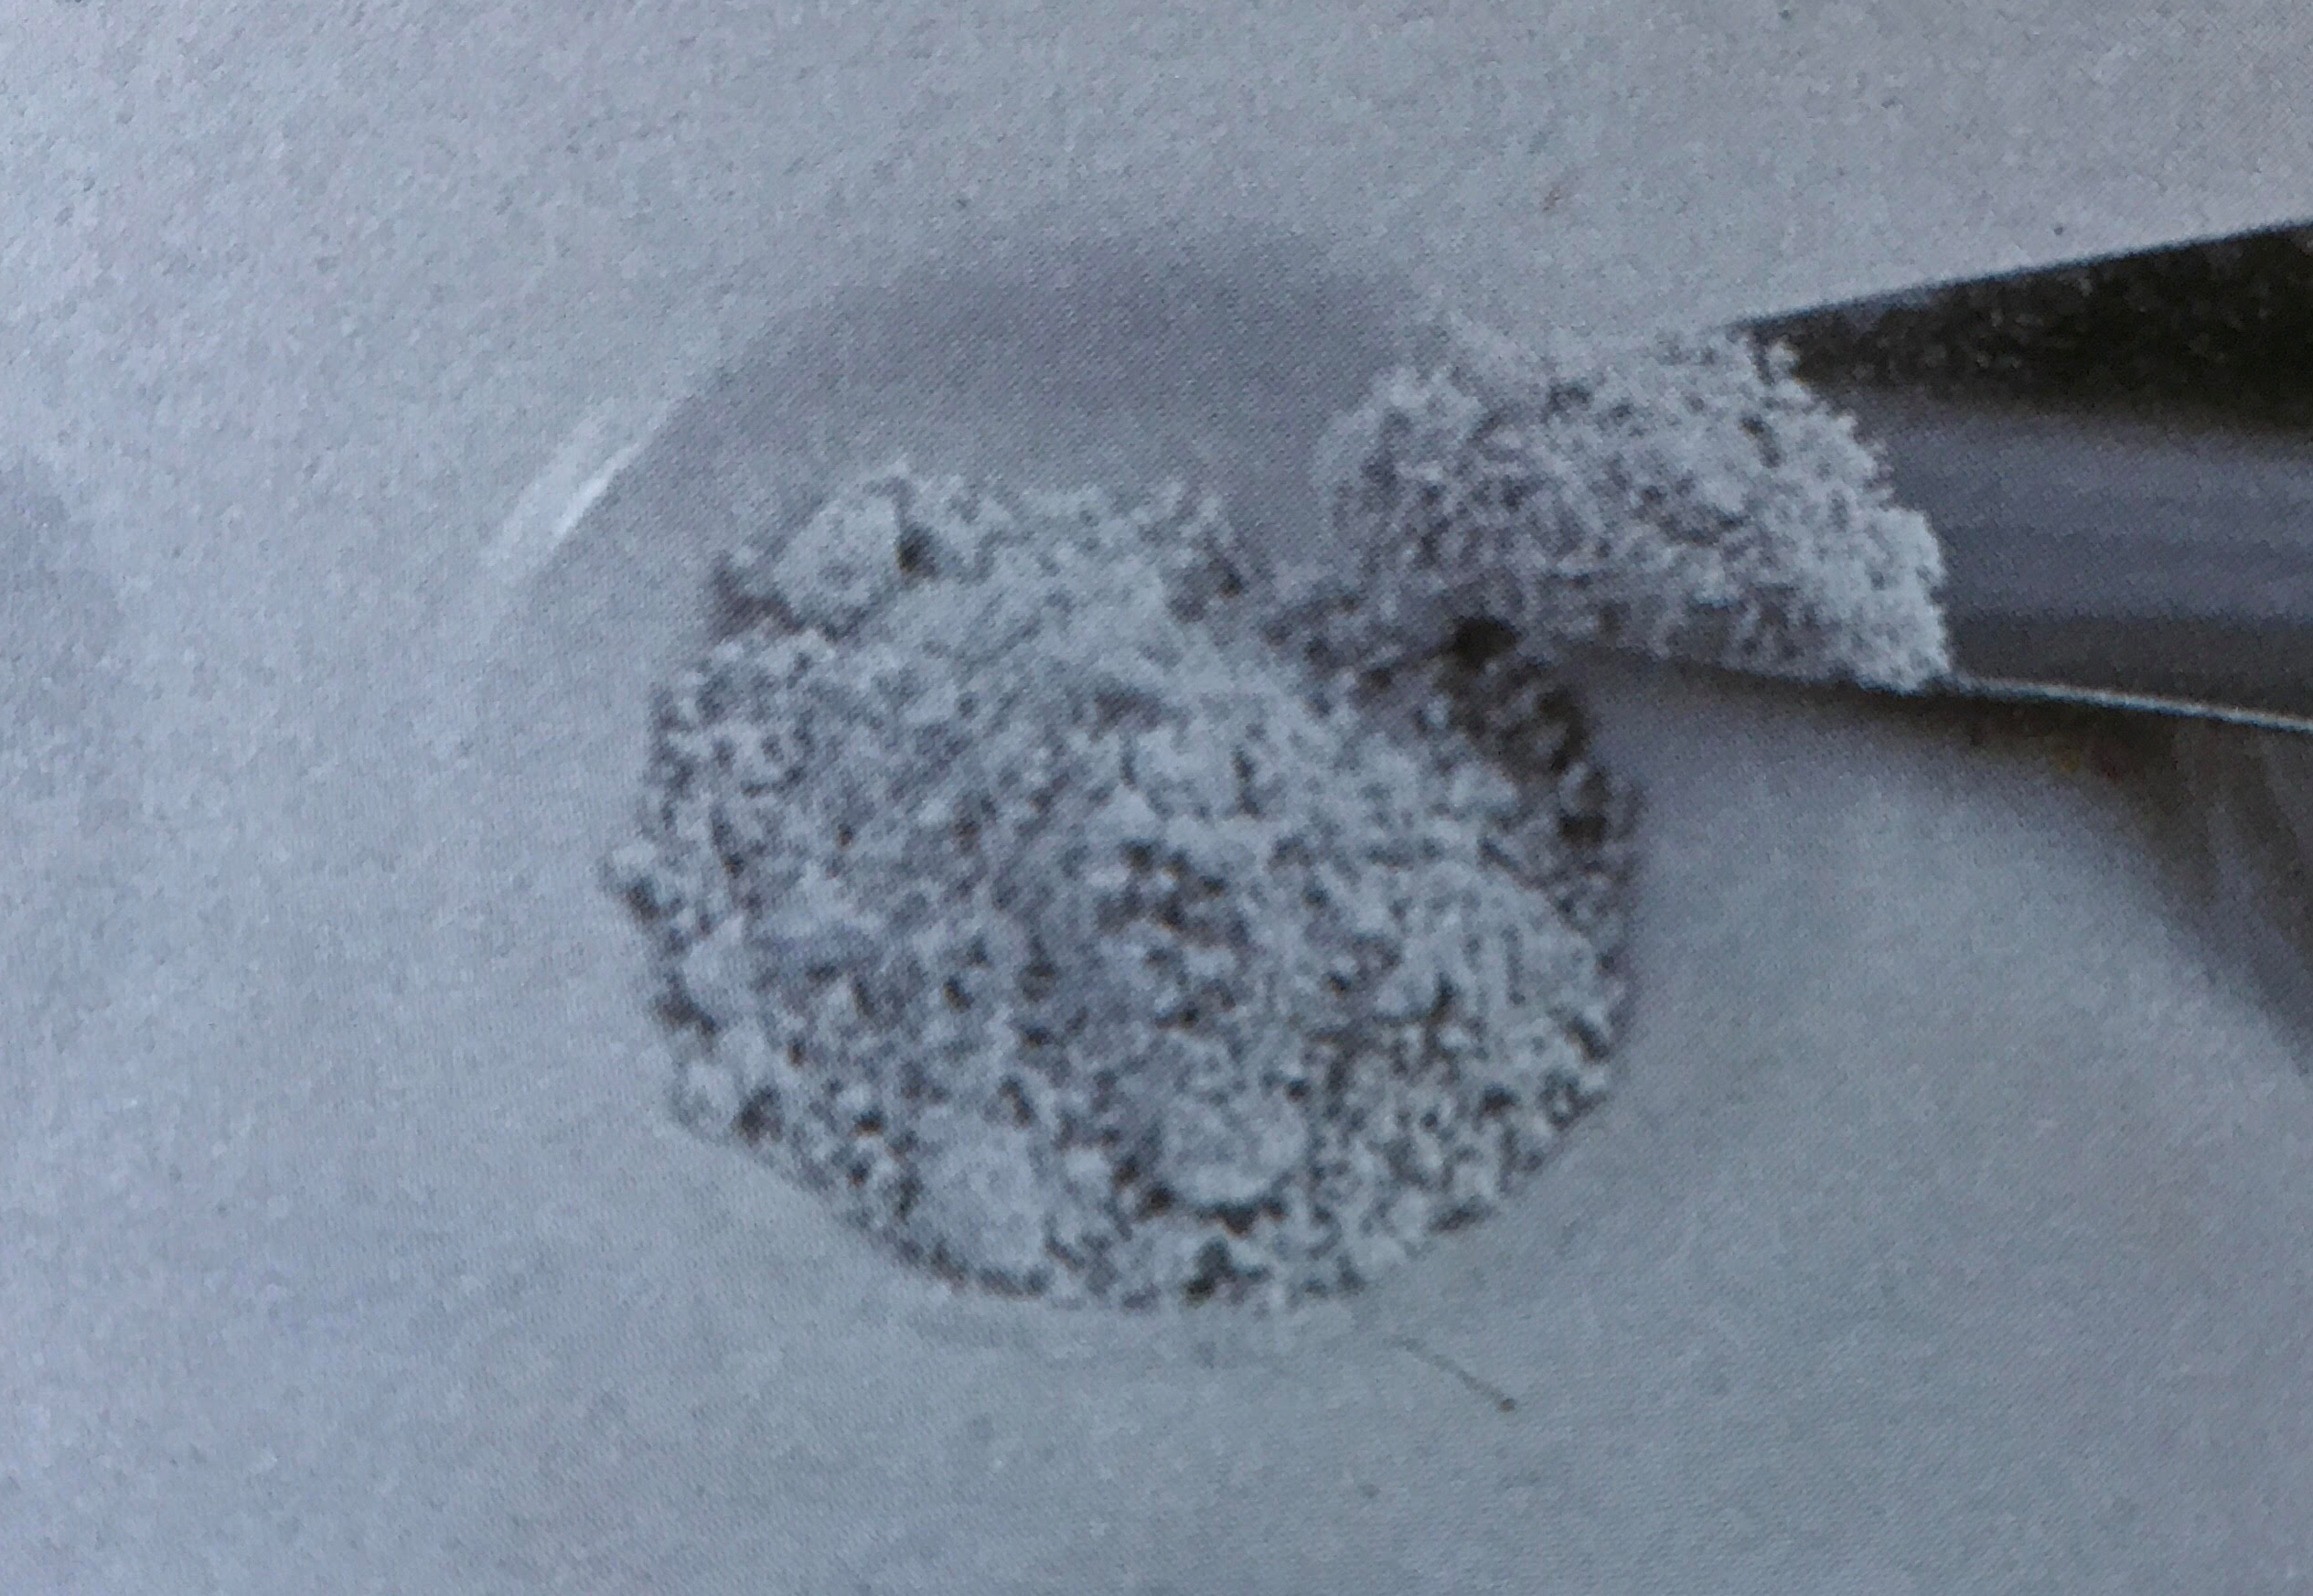 White powder placed in a depression.